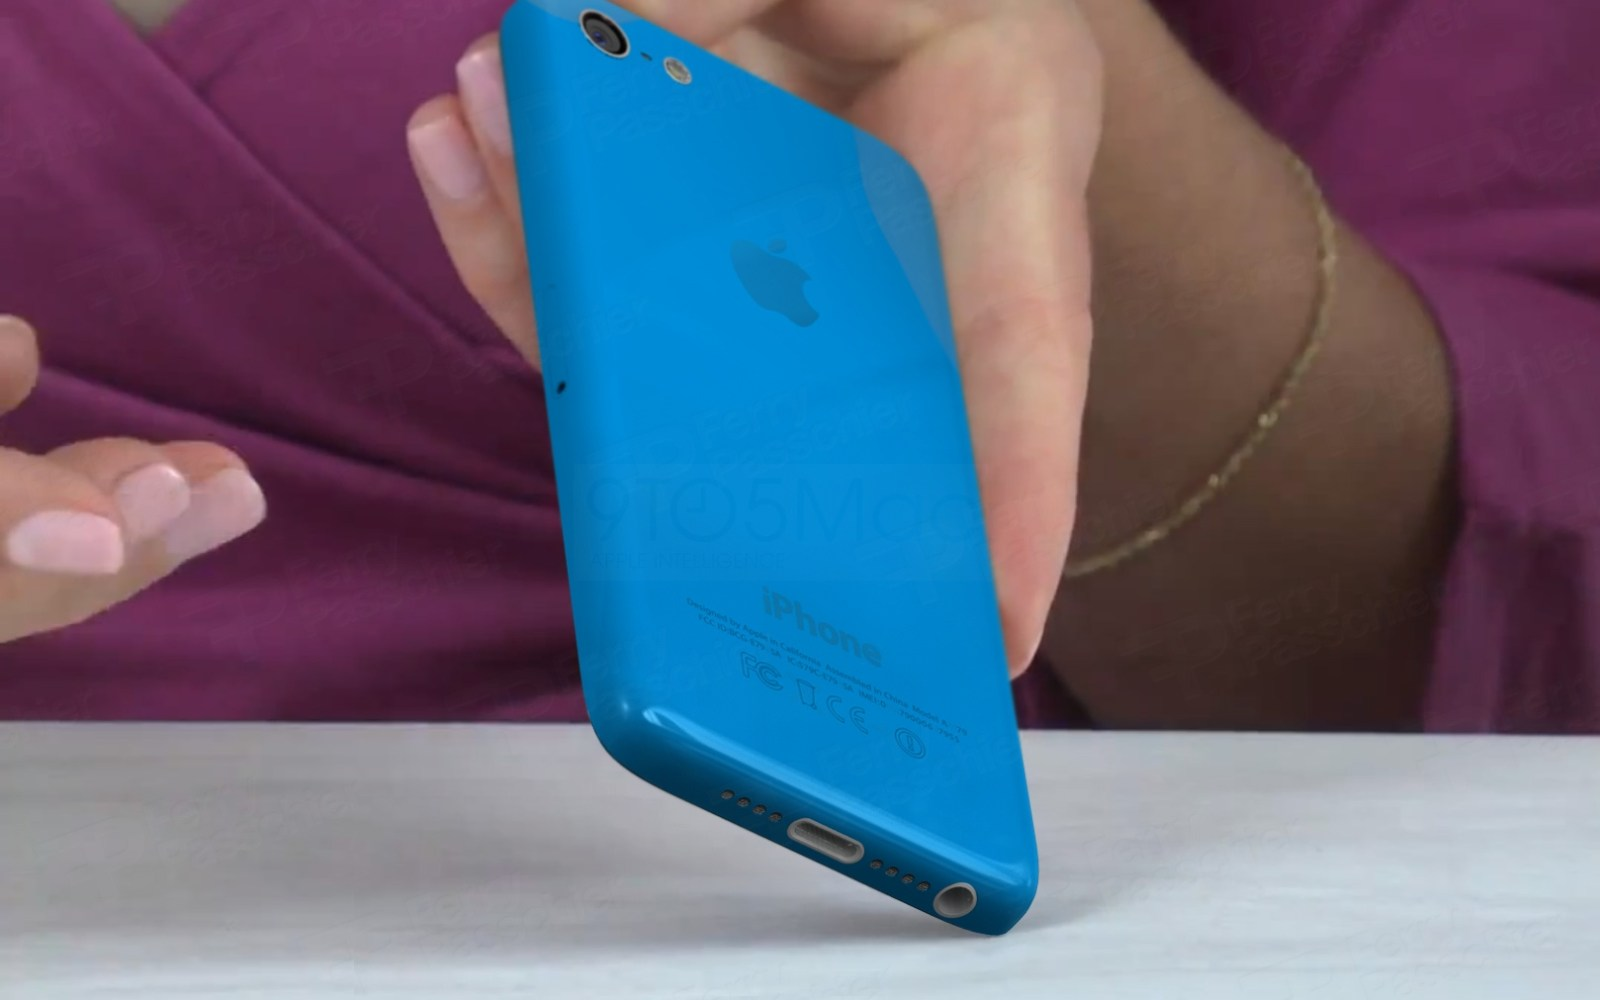 Rumor: Cheaper iPhone is being tested in a plethora of colors, will be produced July-September